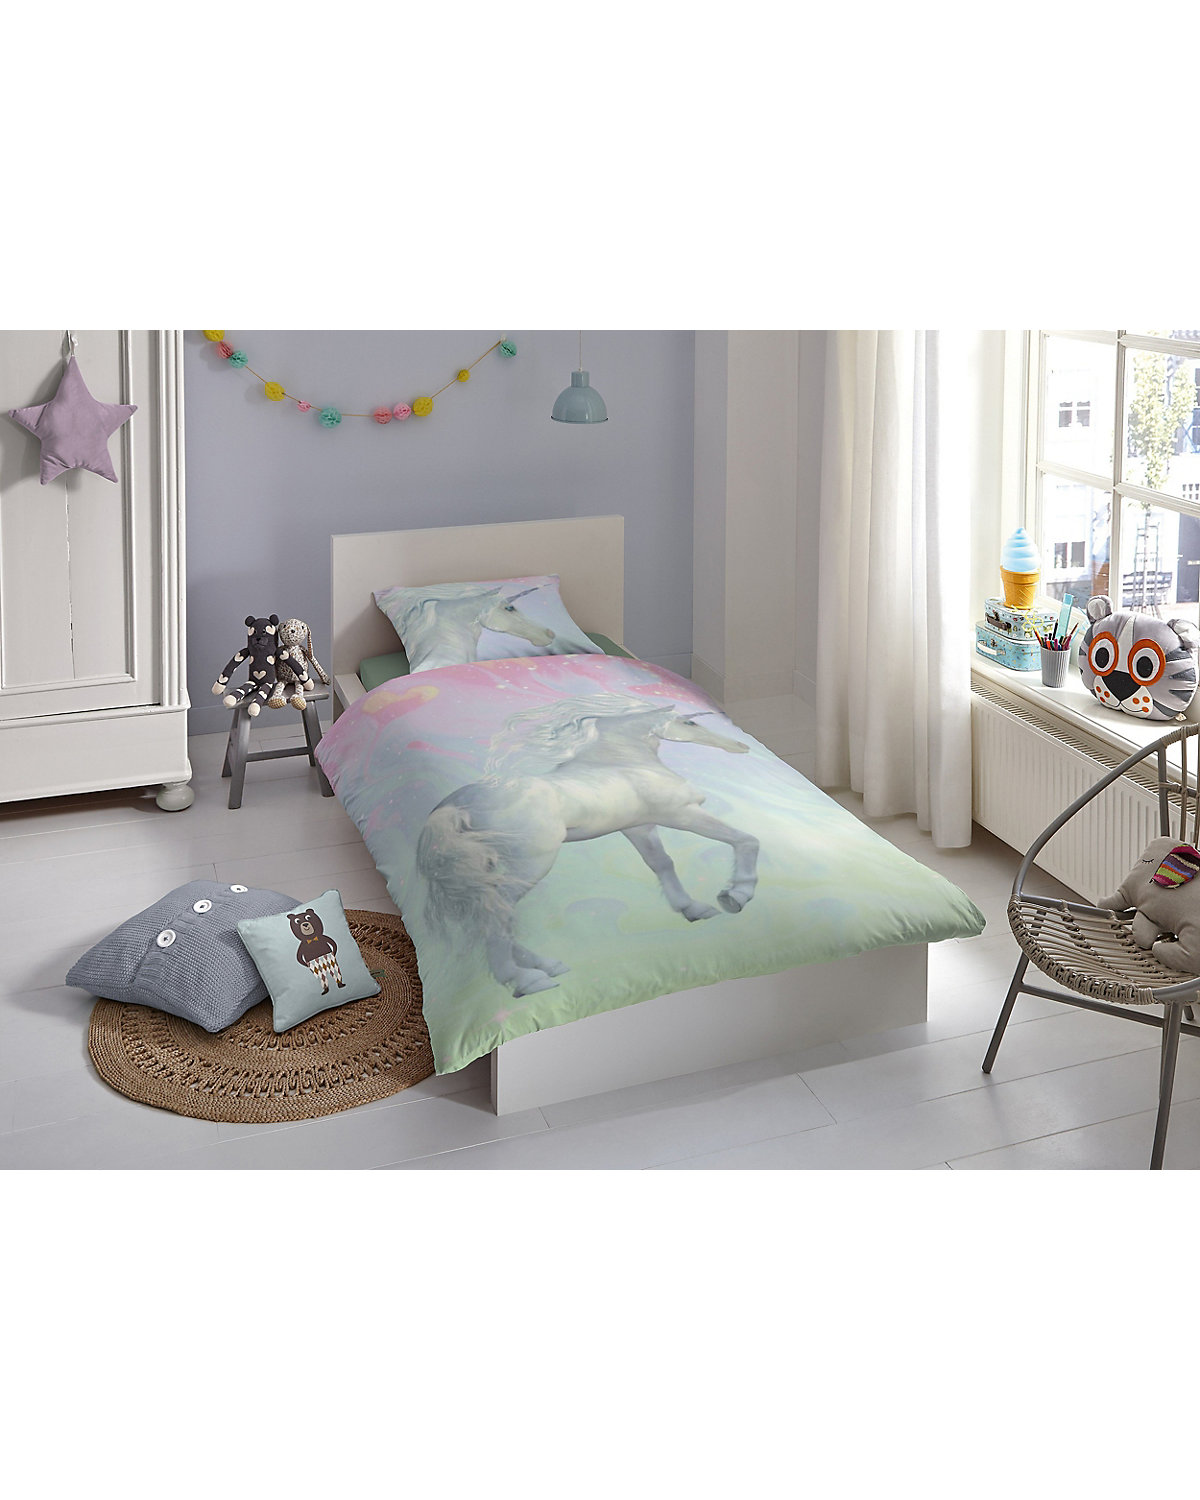 kinderbettw sche einhorn renforc 135 x 200 cm mytoys. Black Bedroom Furniture Sets. Home Design Ideas